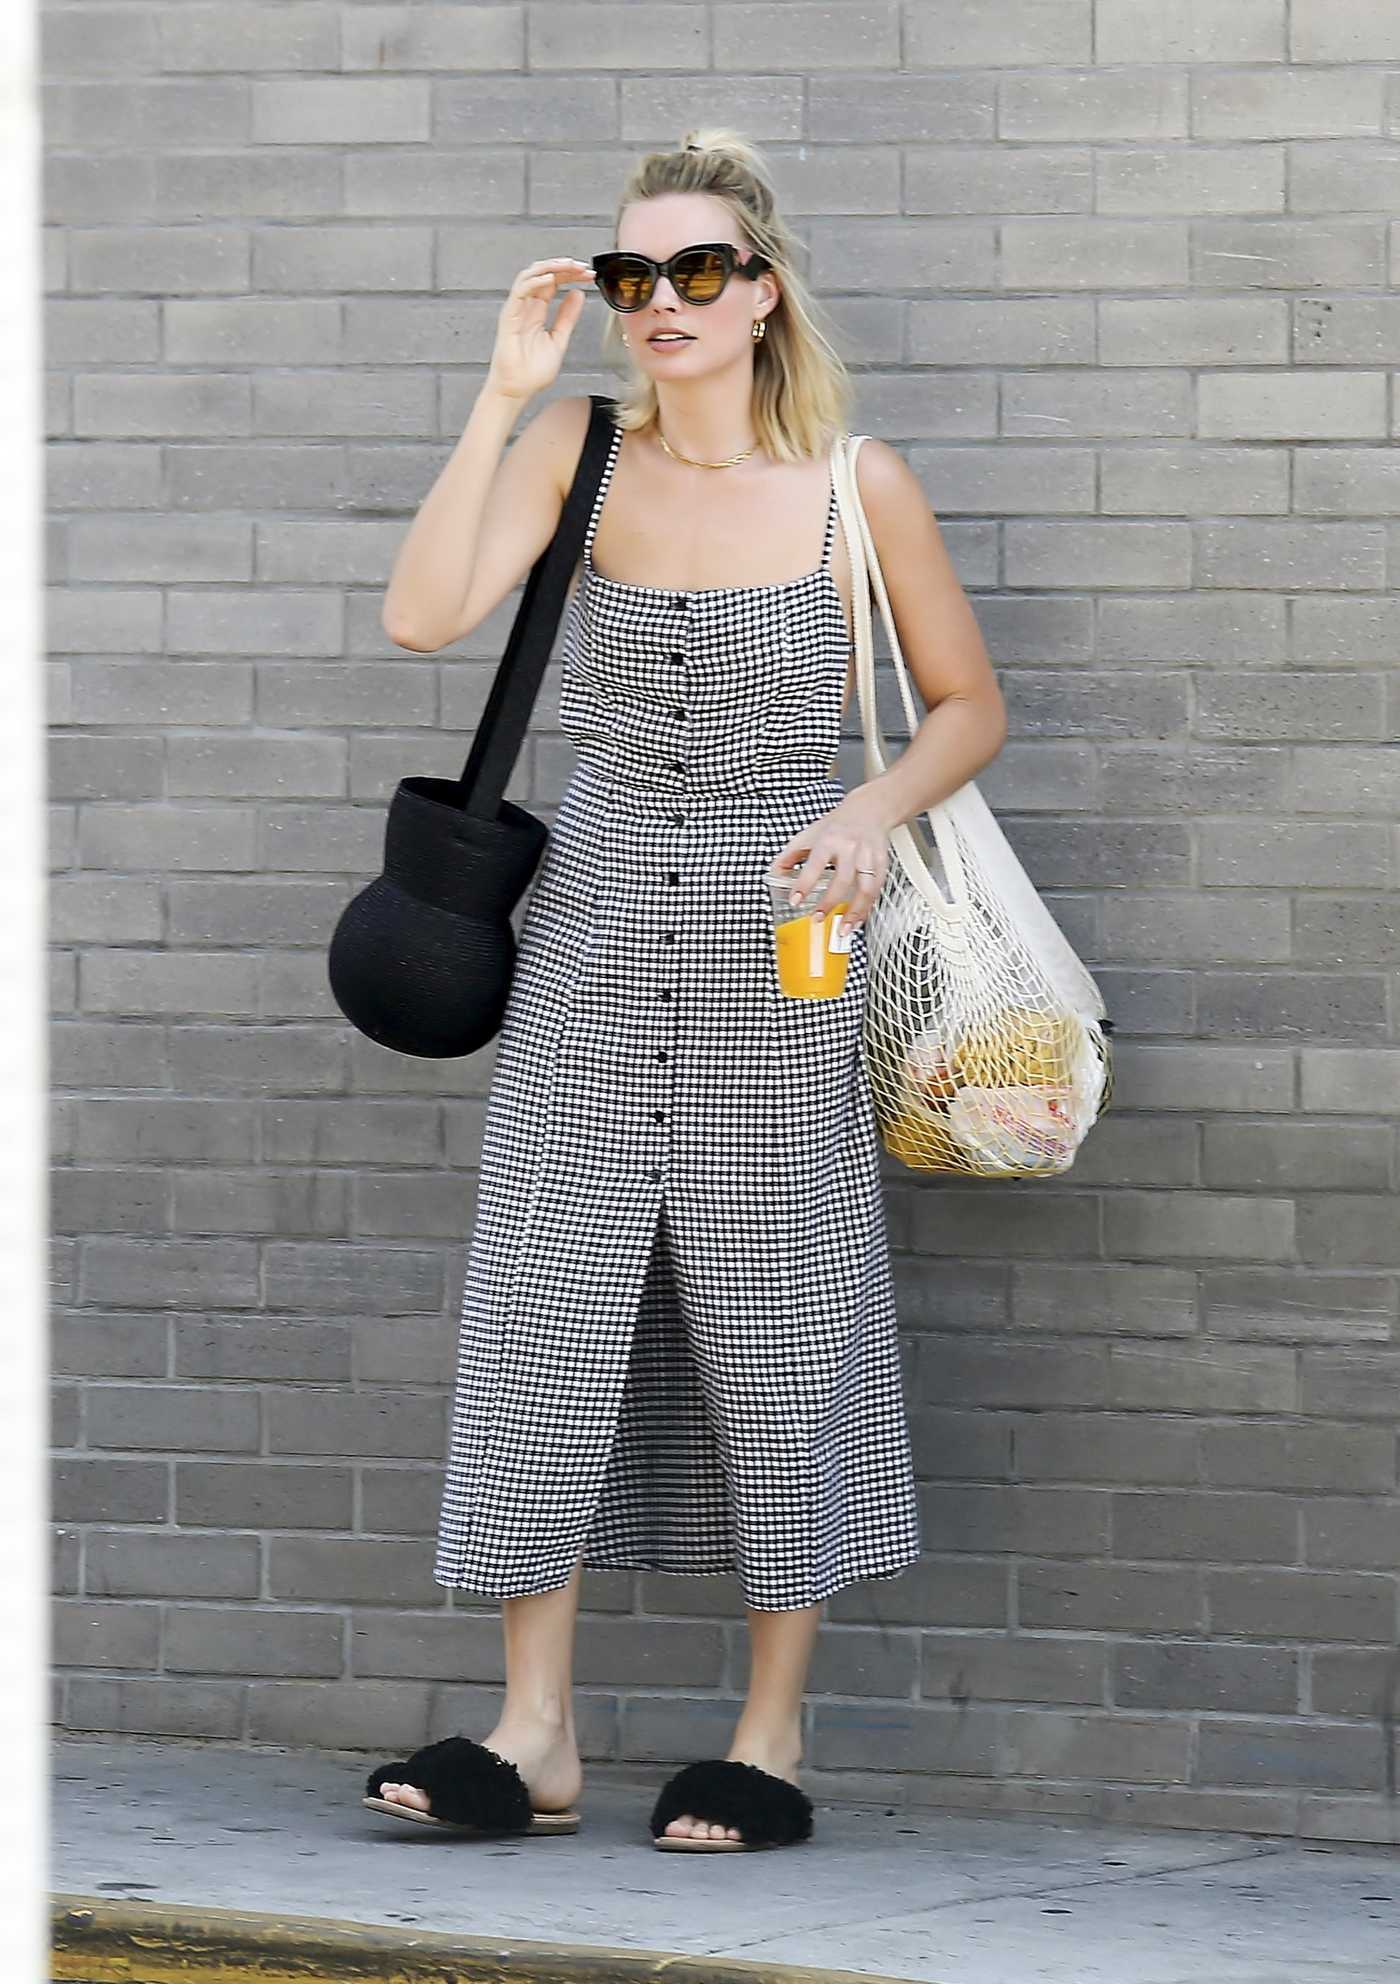 Margot Robbie in a Checked Sundress Was Seen Out in Los Angeles 09/09/2018